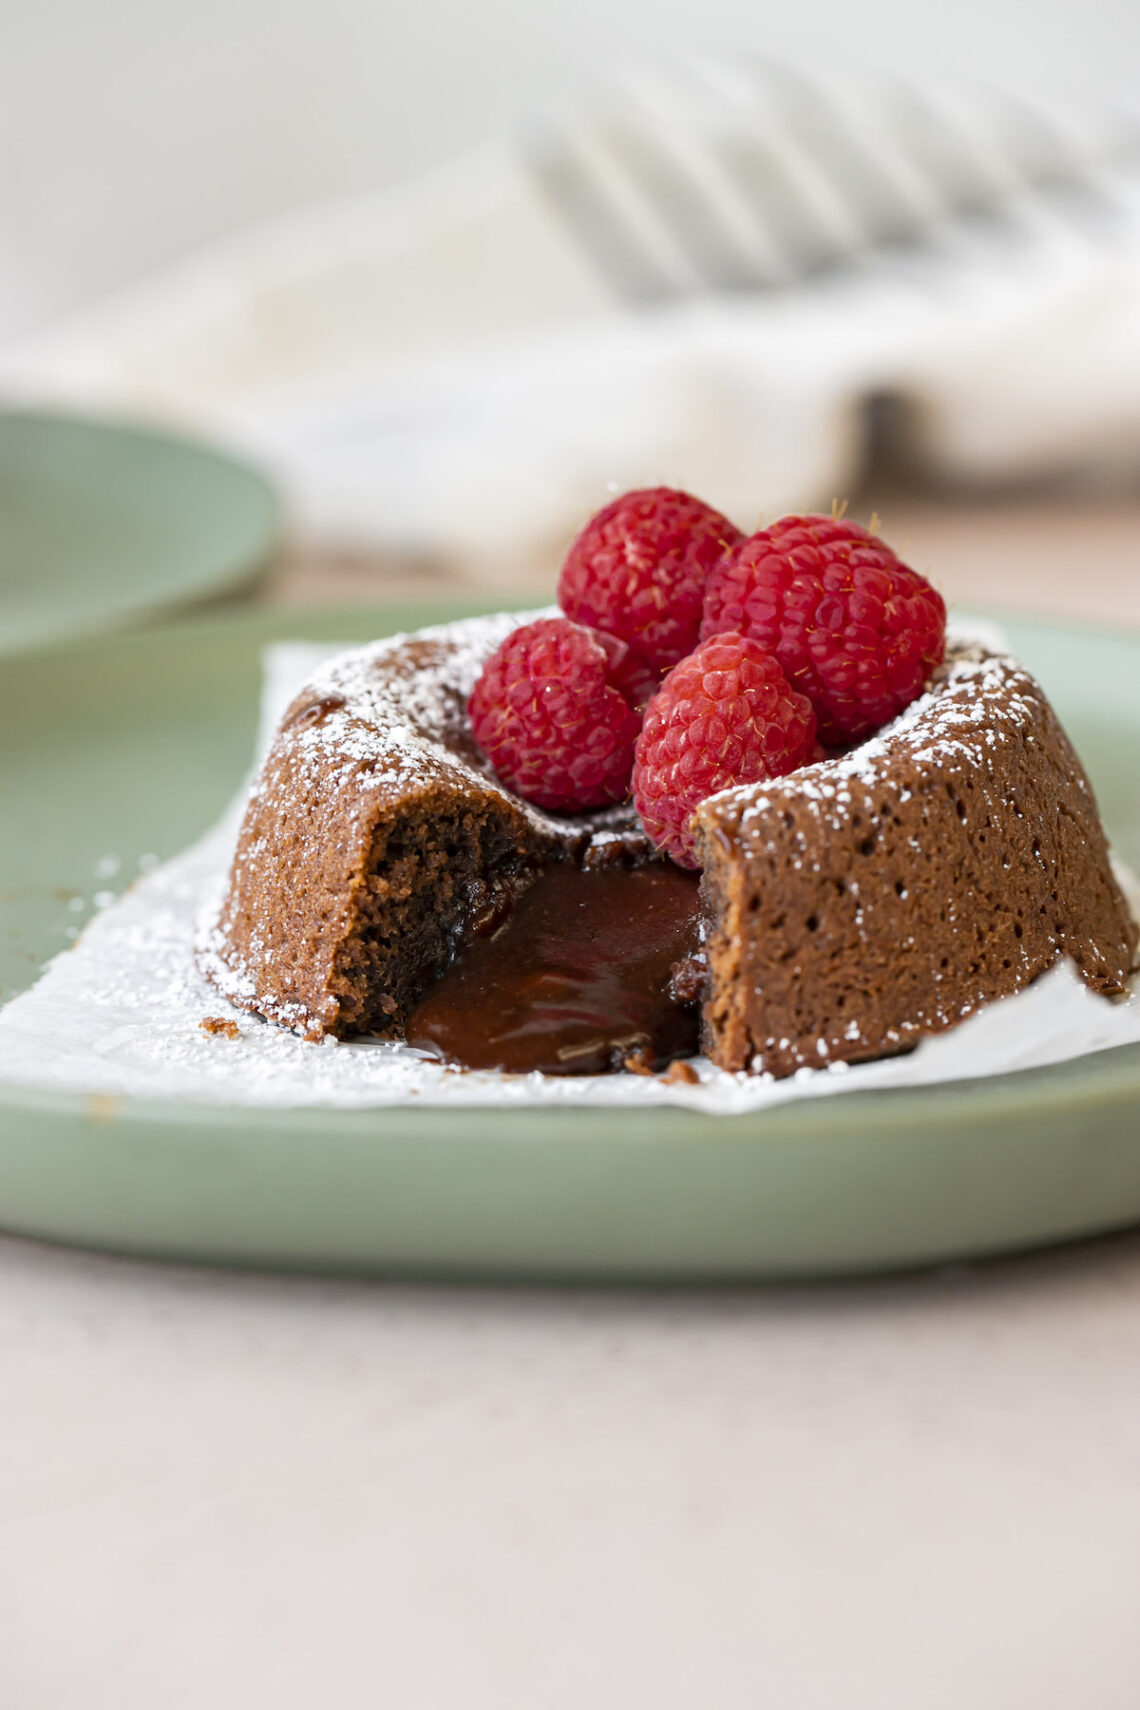 lava cake cut open with powdered sugar and raspberries on top